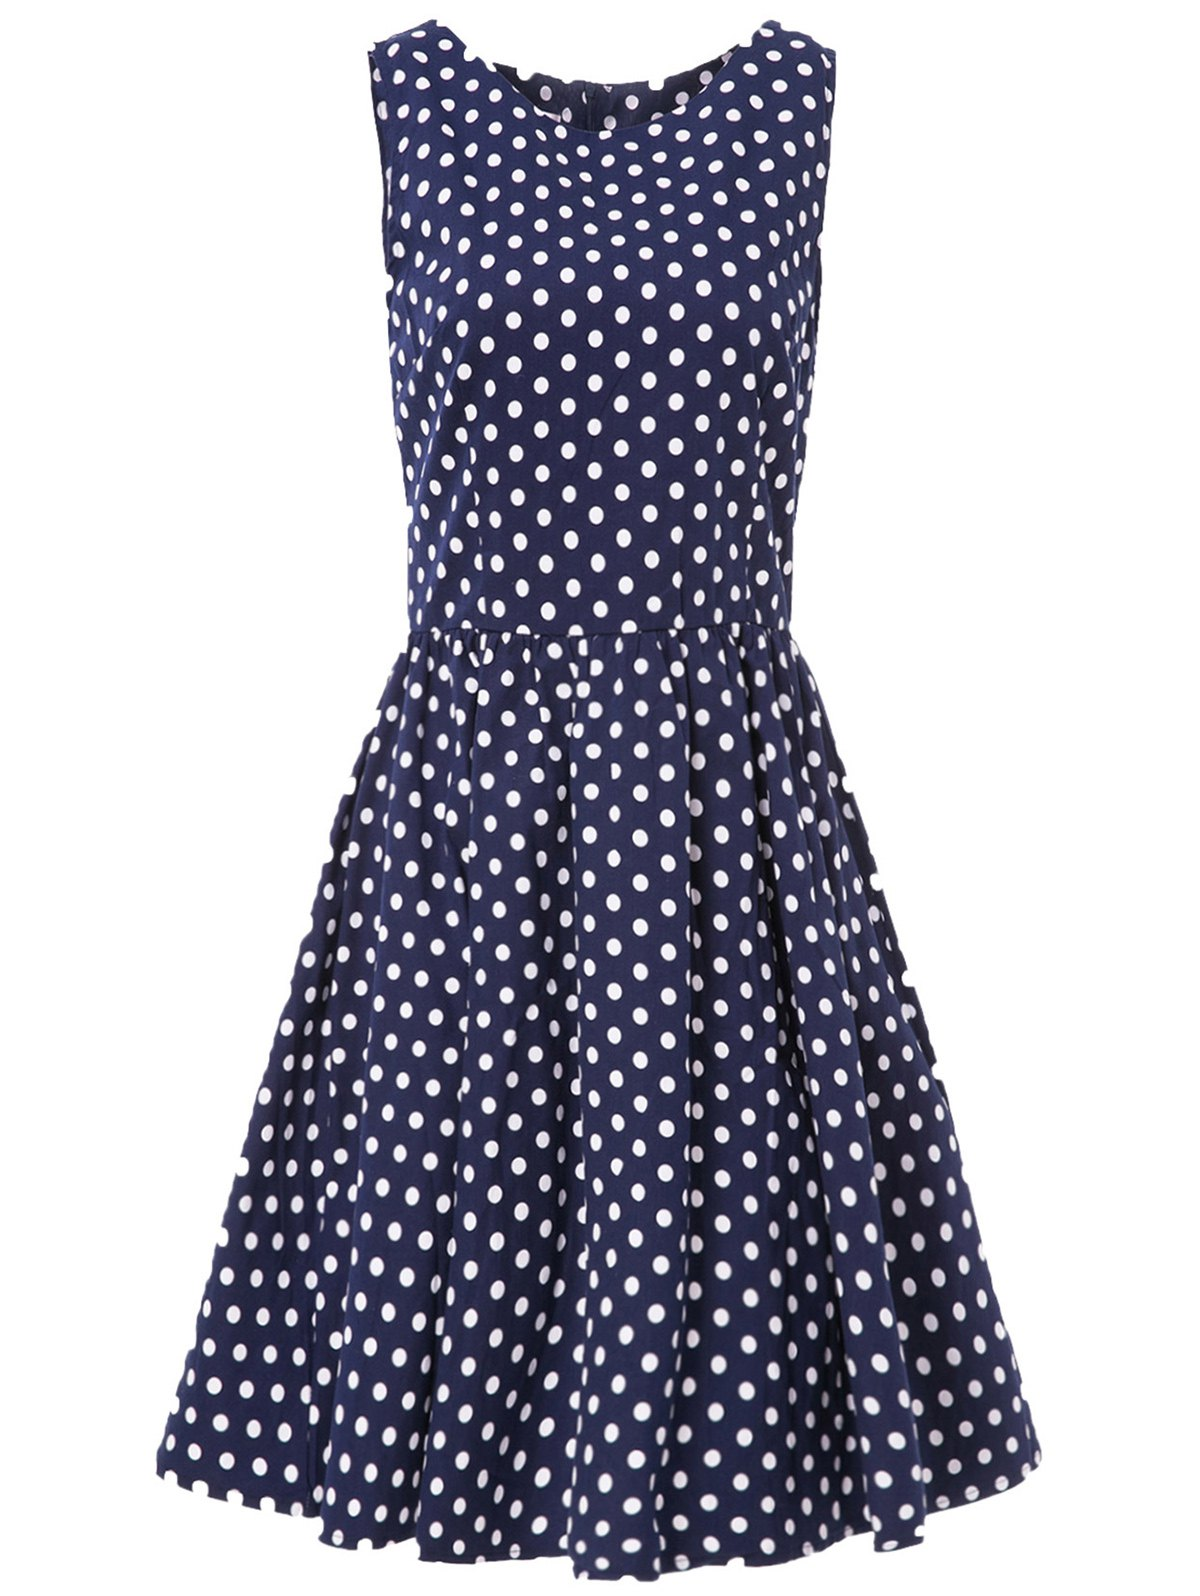 Retro Style Sleeveless Round Neck Polka Dot Women's A-Line Dress - PURPLISH BLUE 2XL